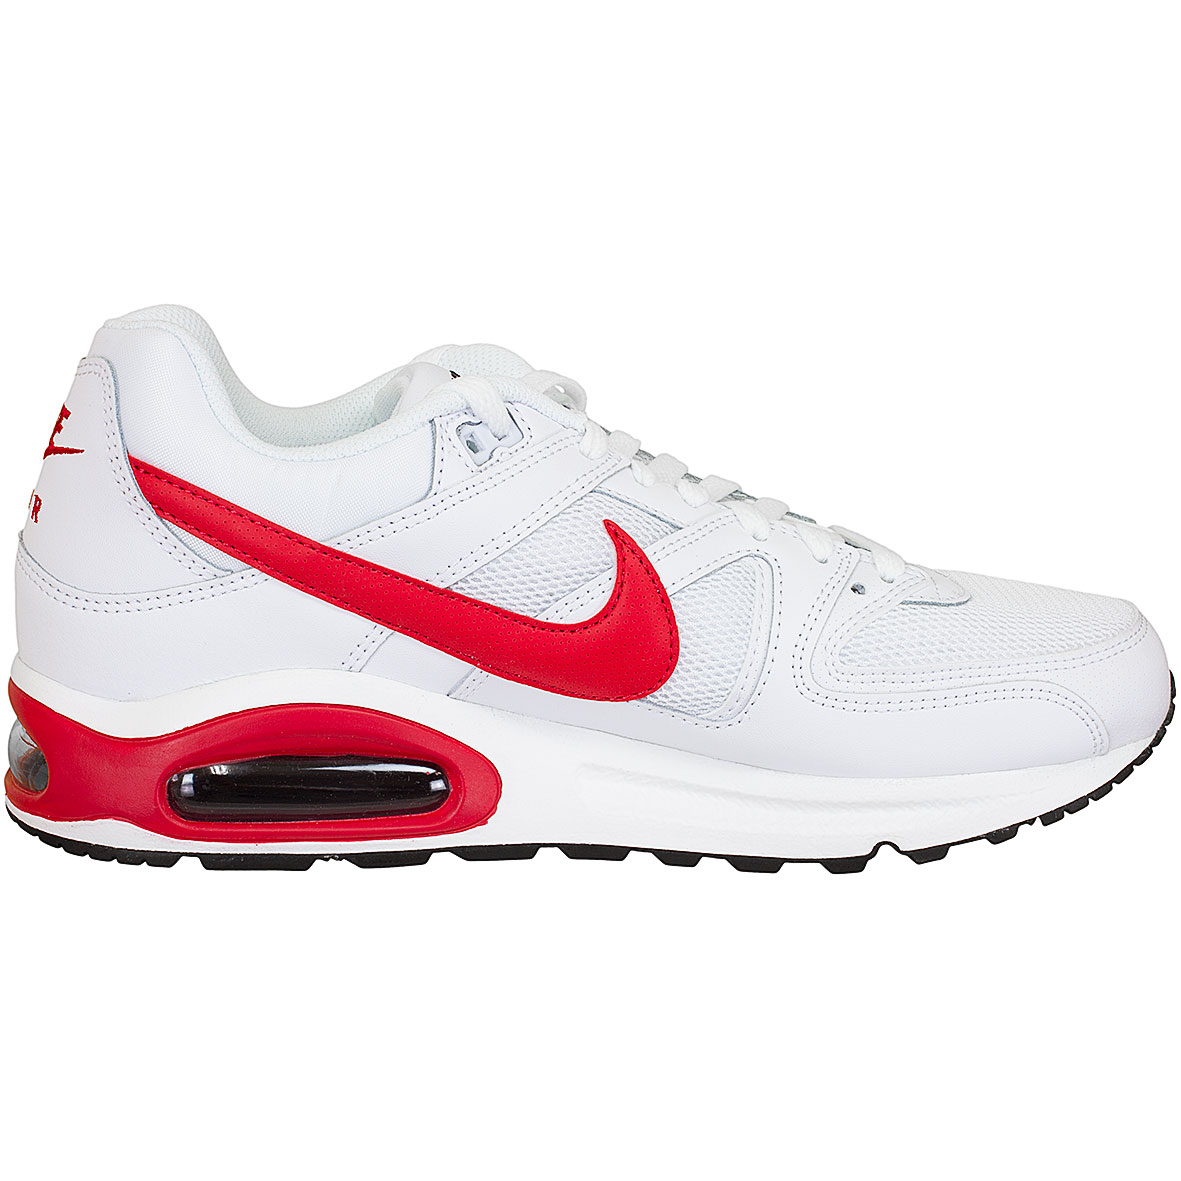 new styles 09370 4e4a6 Nike Sneaker Air Max Command weiß rot